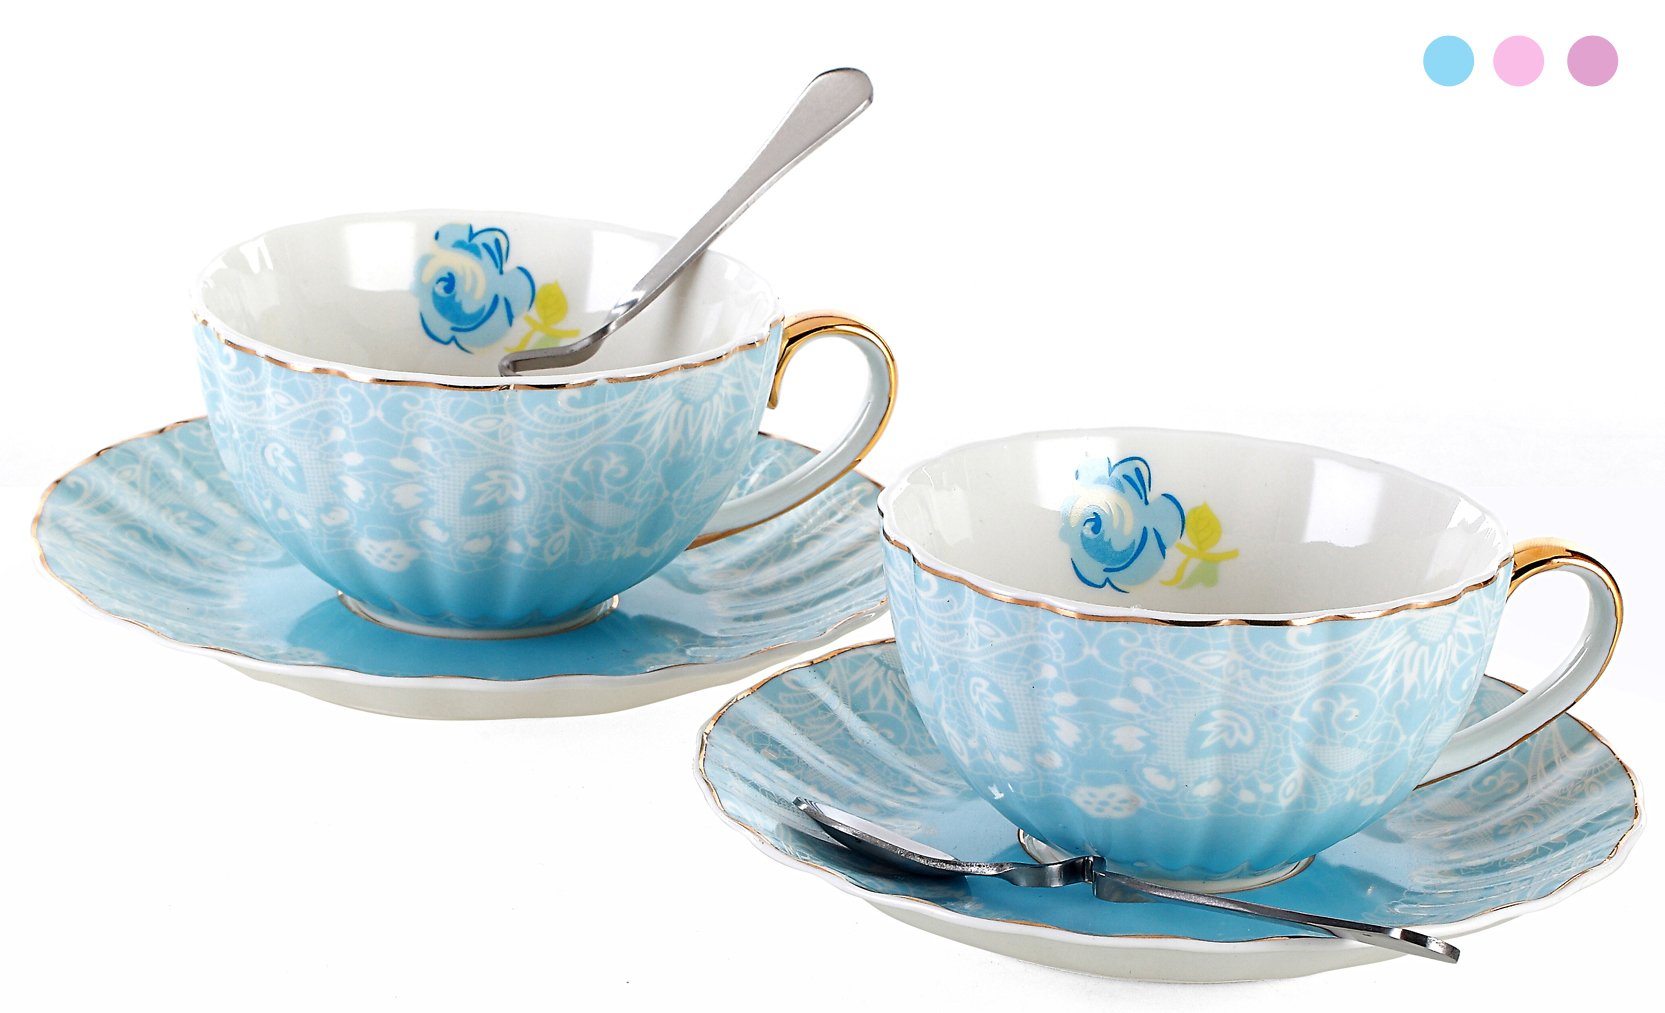 Jusalpha Porcelain Tea Cup and Saucer Coffee Cup Set with Saucer and Spoon FD-TCS04 (Set of 2, Blue)